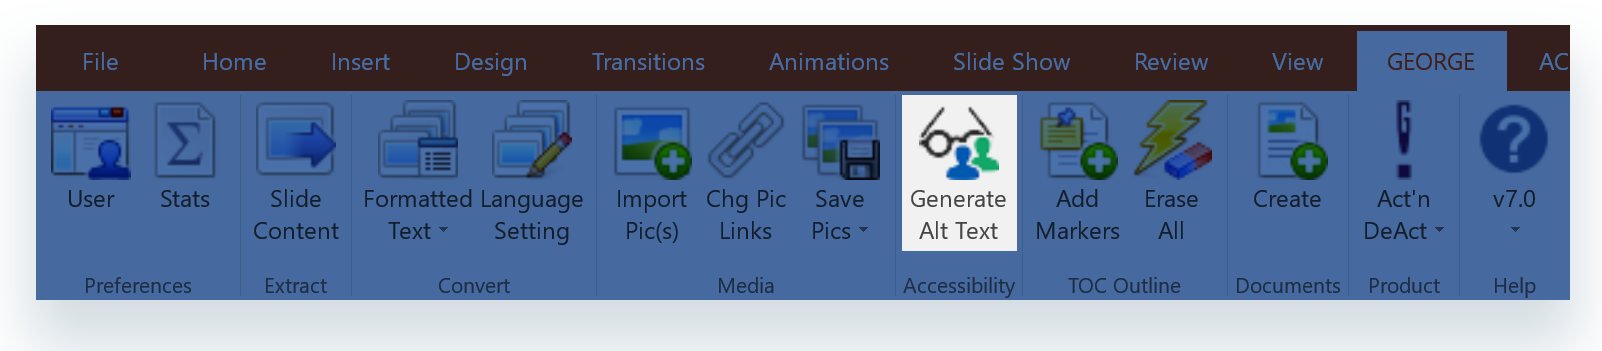 Generate Alt Text  button on  george!  ribbon in PowerPoint